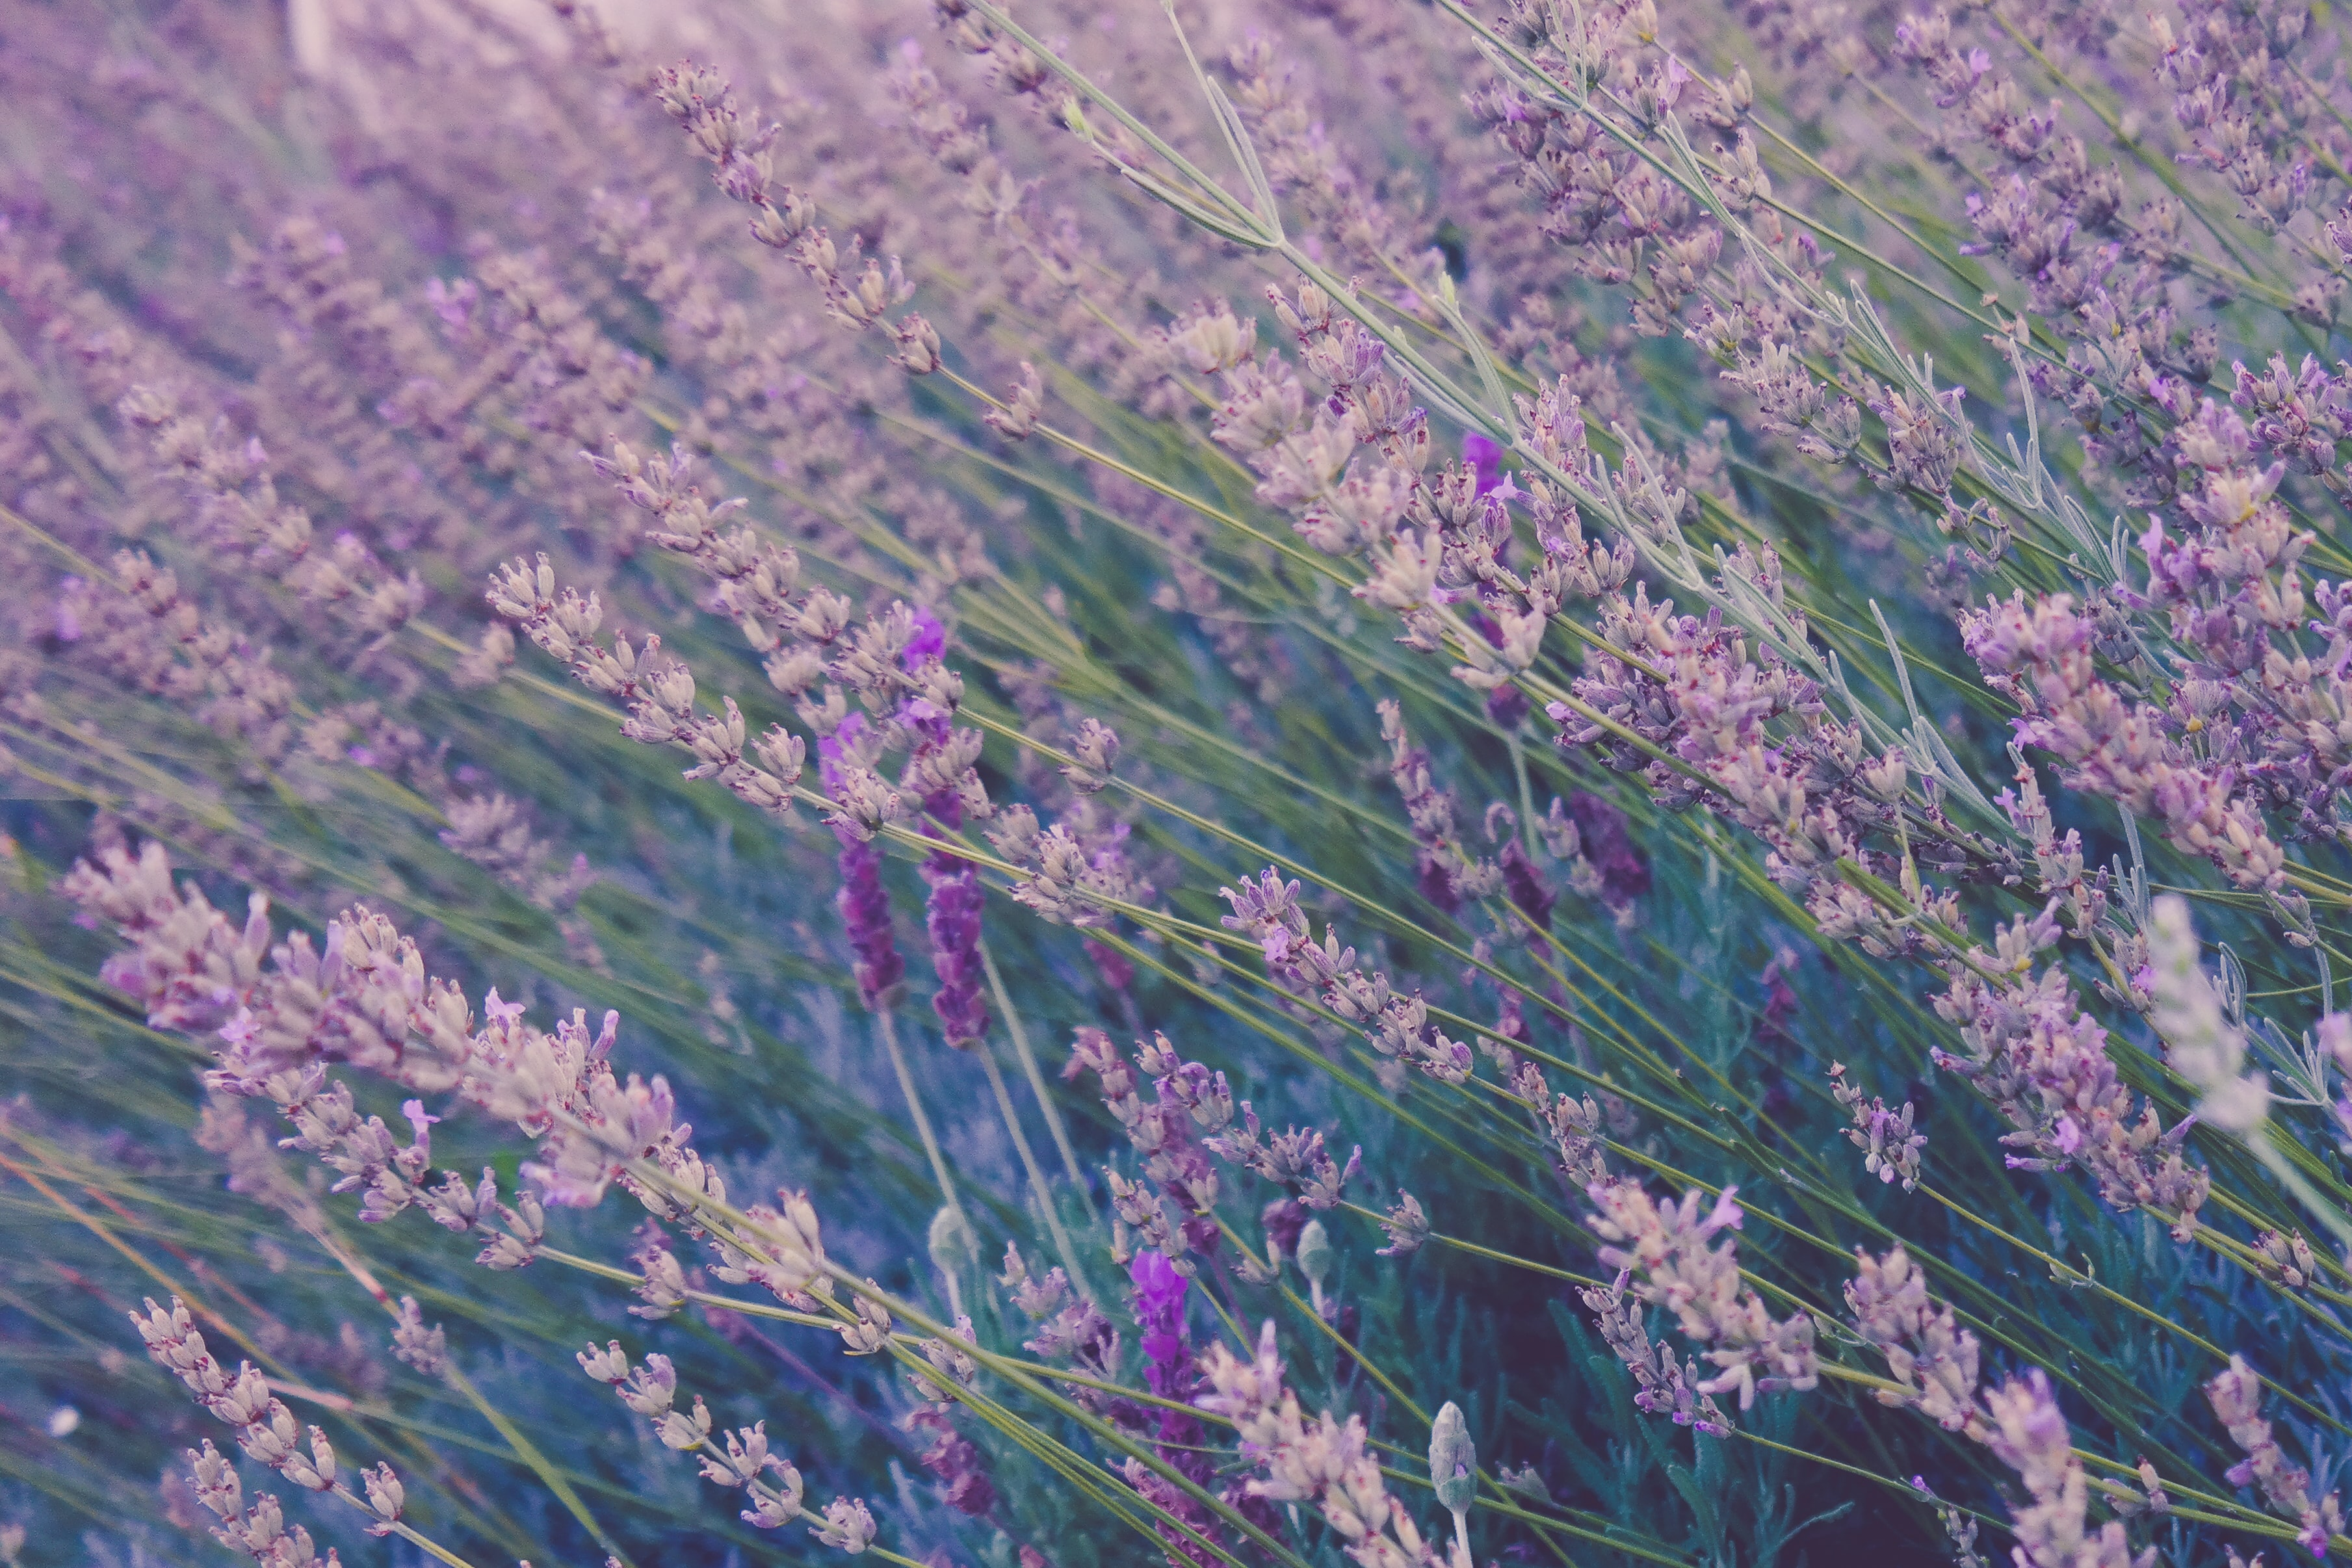 Tall lavender plants swaying in the wind